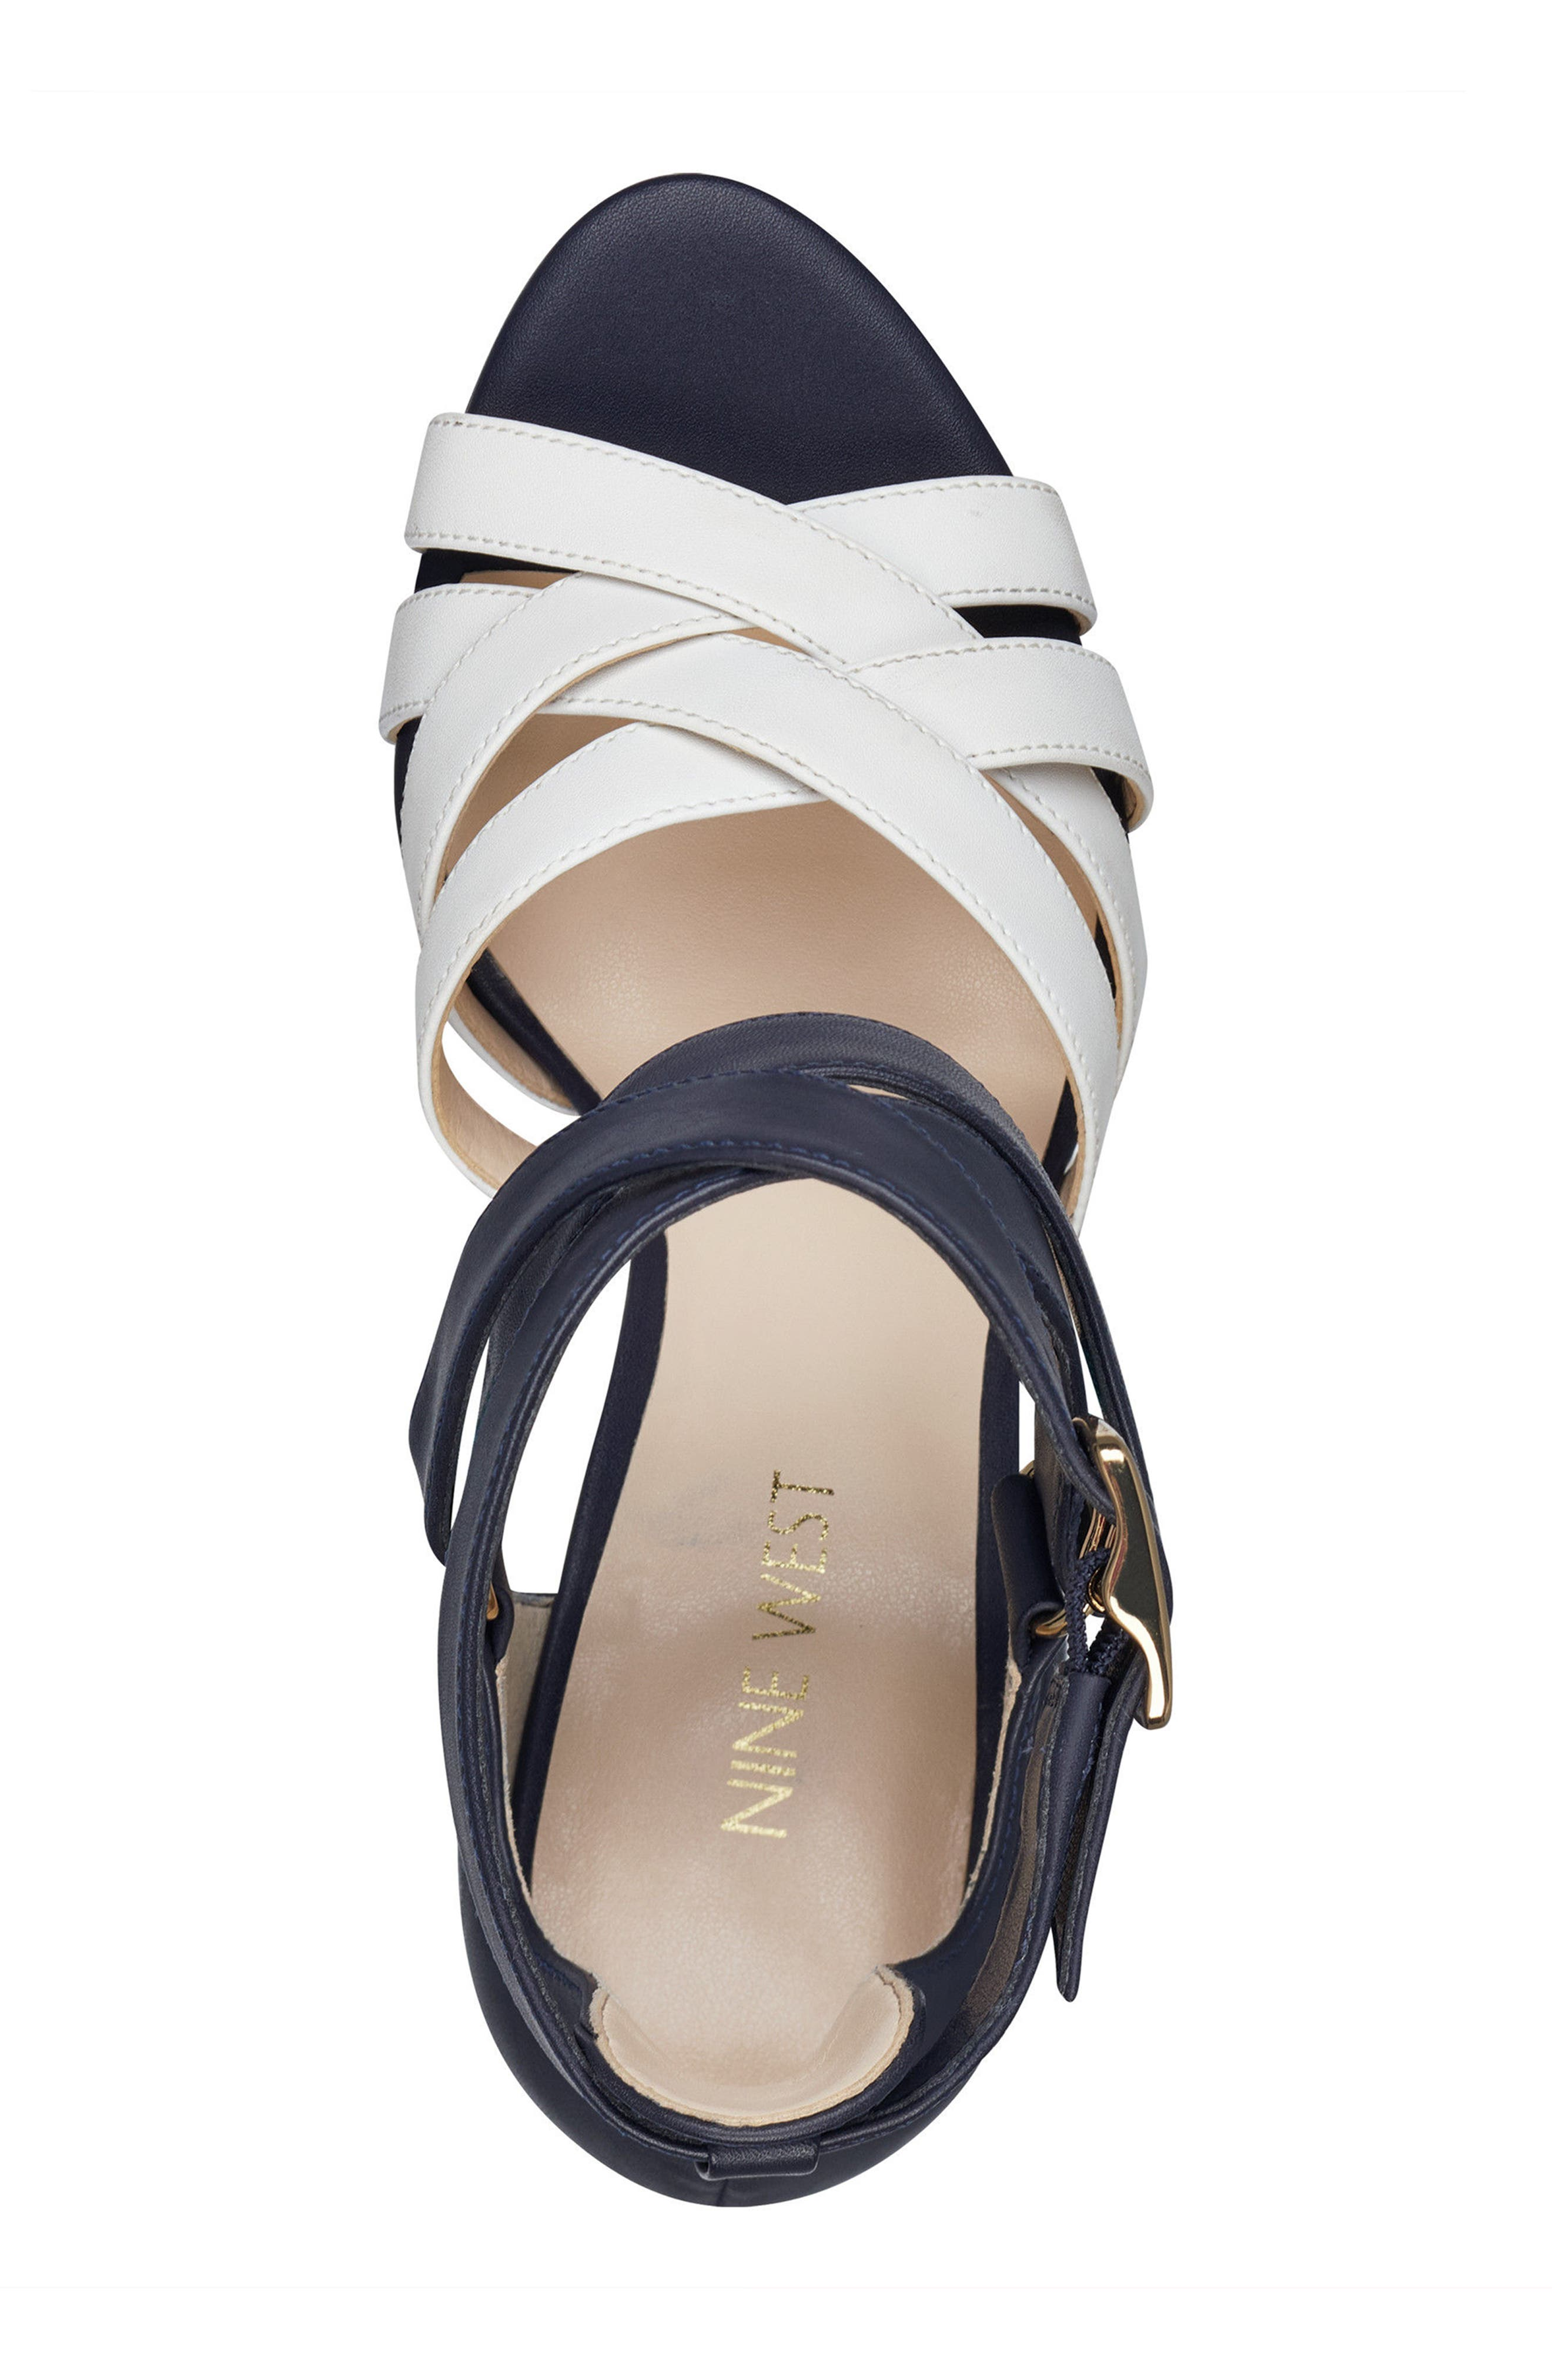 McGlynn Strappy Sandal,                             Alternate thumbnail 5, color,                             Navy/ White Leather